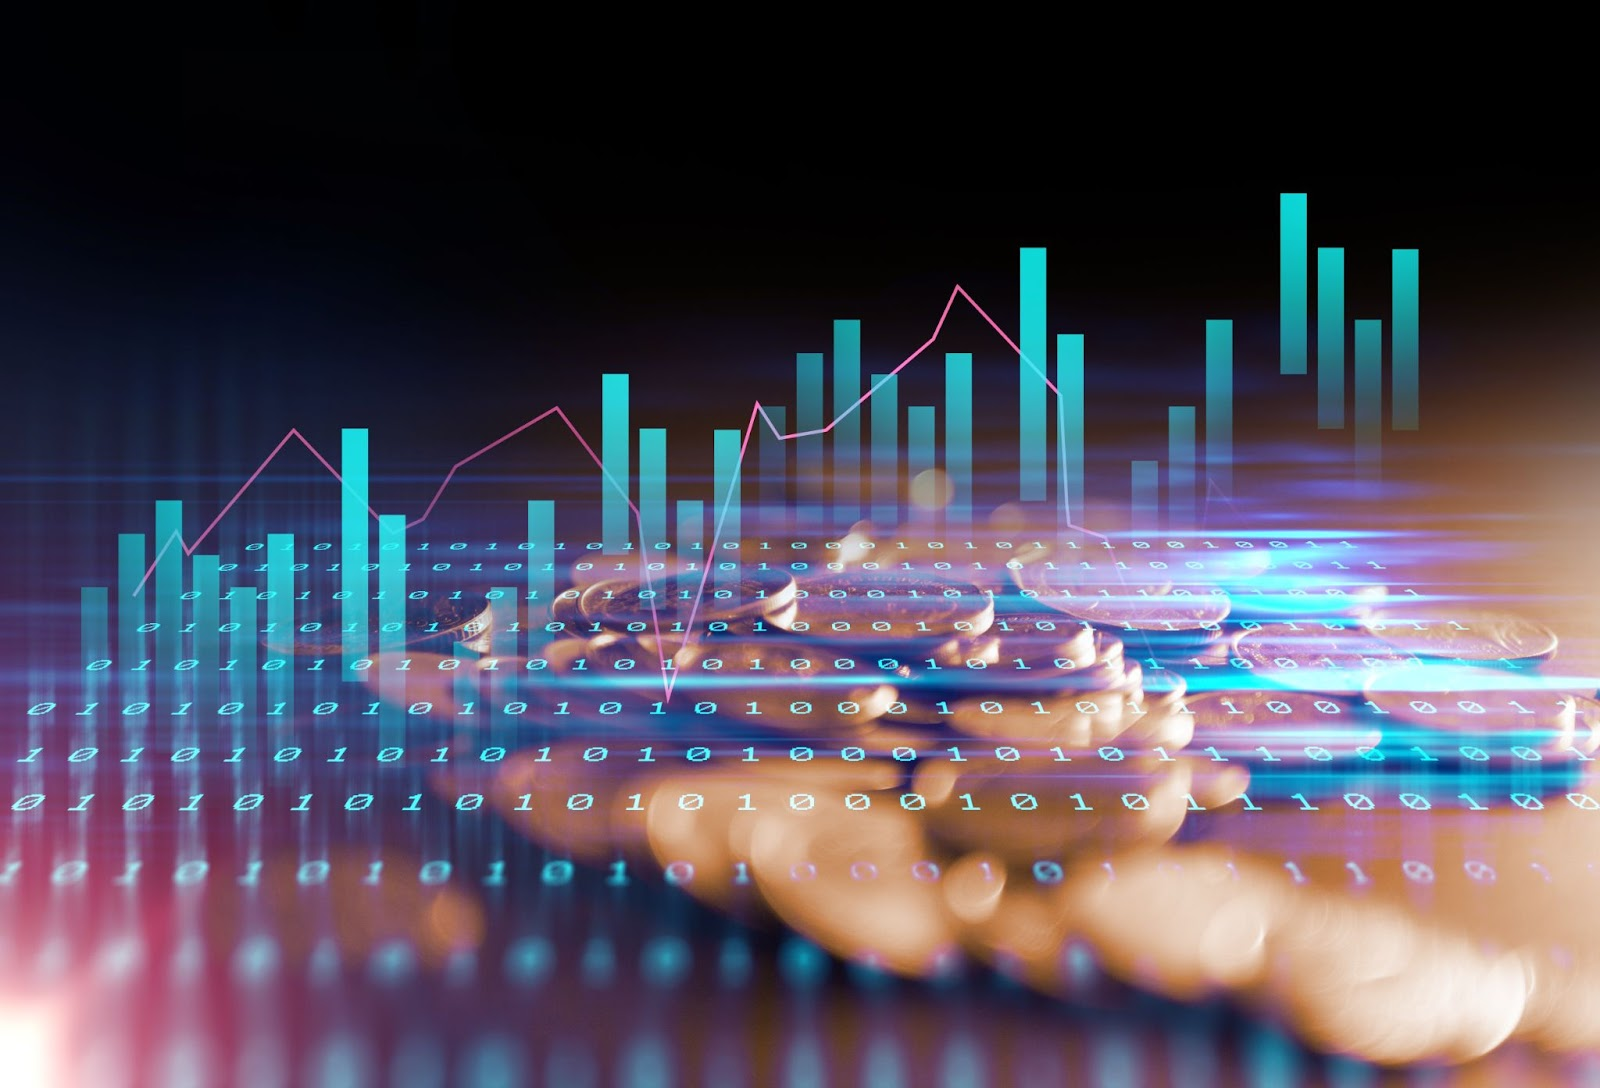 A Beginners Guide To Crypto Trading - 5 Things You Shouldn't Miss